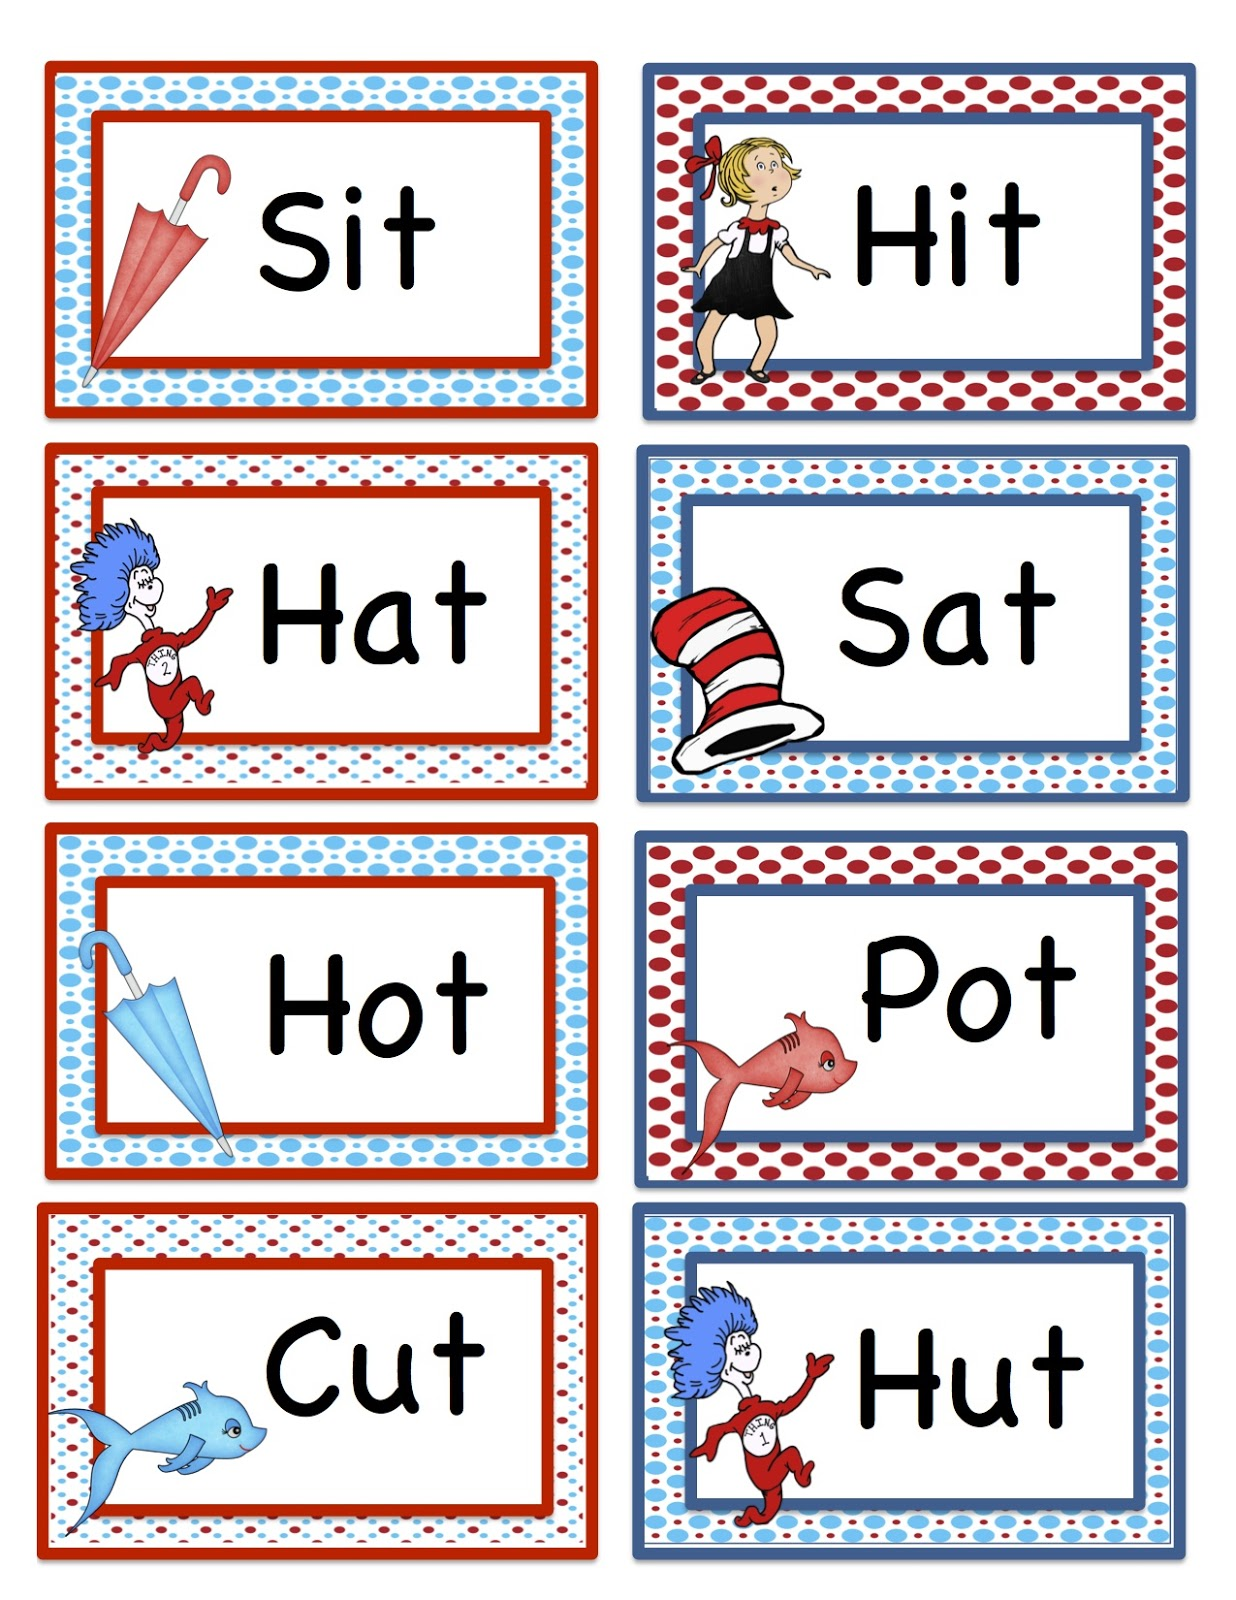 Worksheet Rhyming Words For Grade 1 list of rhyming words for grade 2 scalien kindergarten mikyu free worksheet